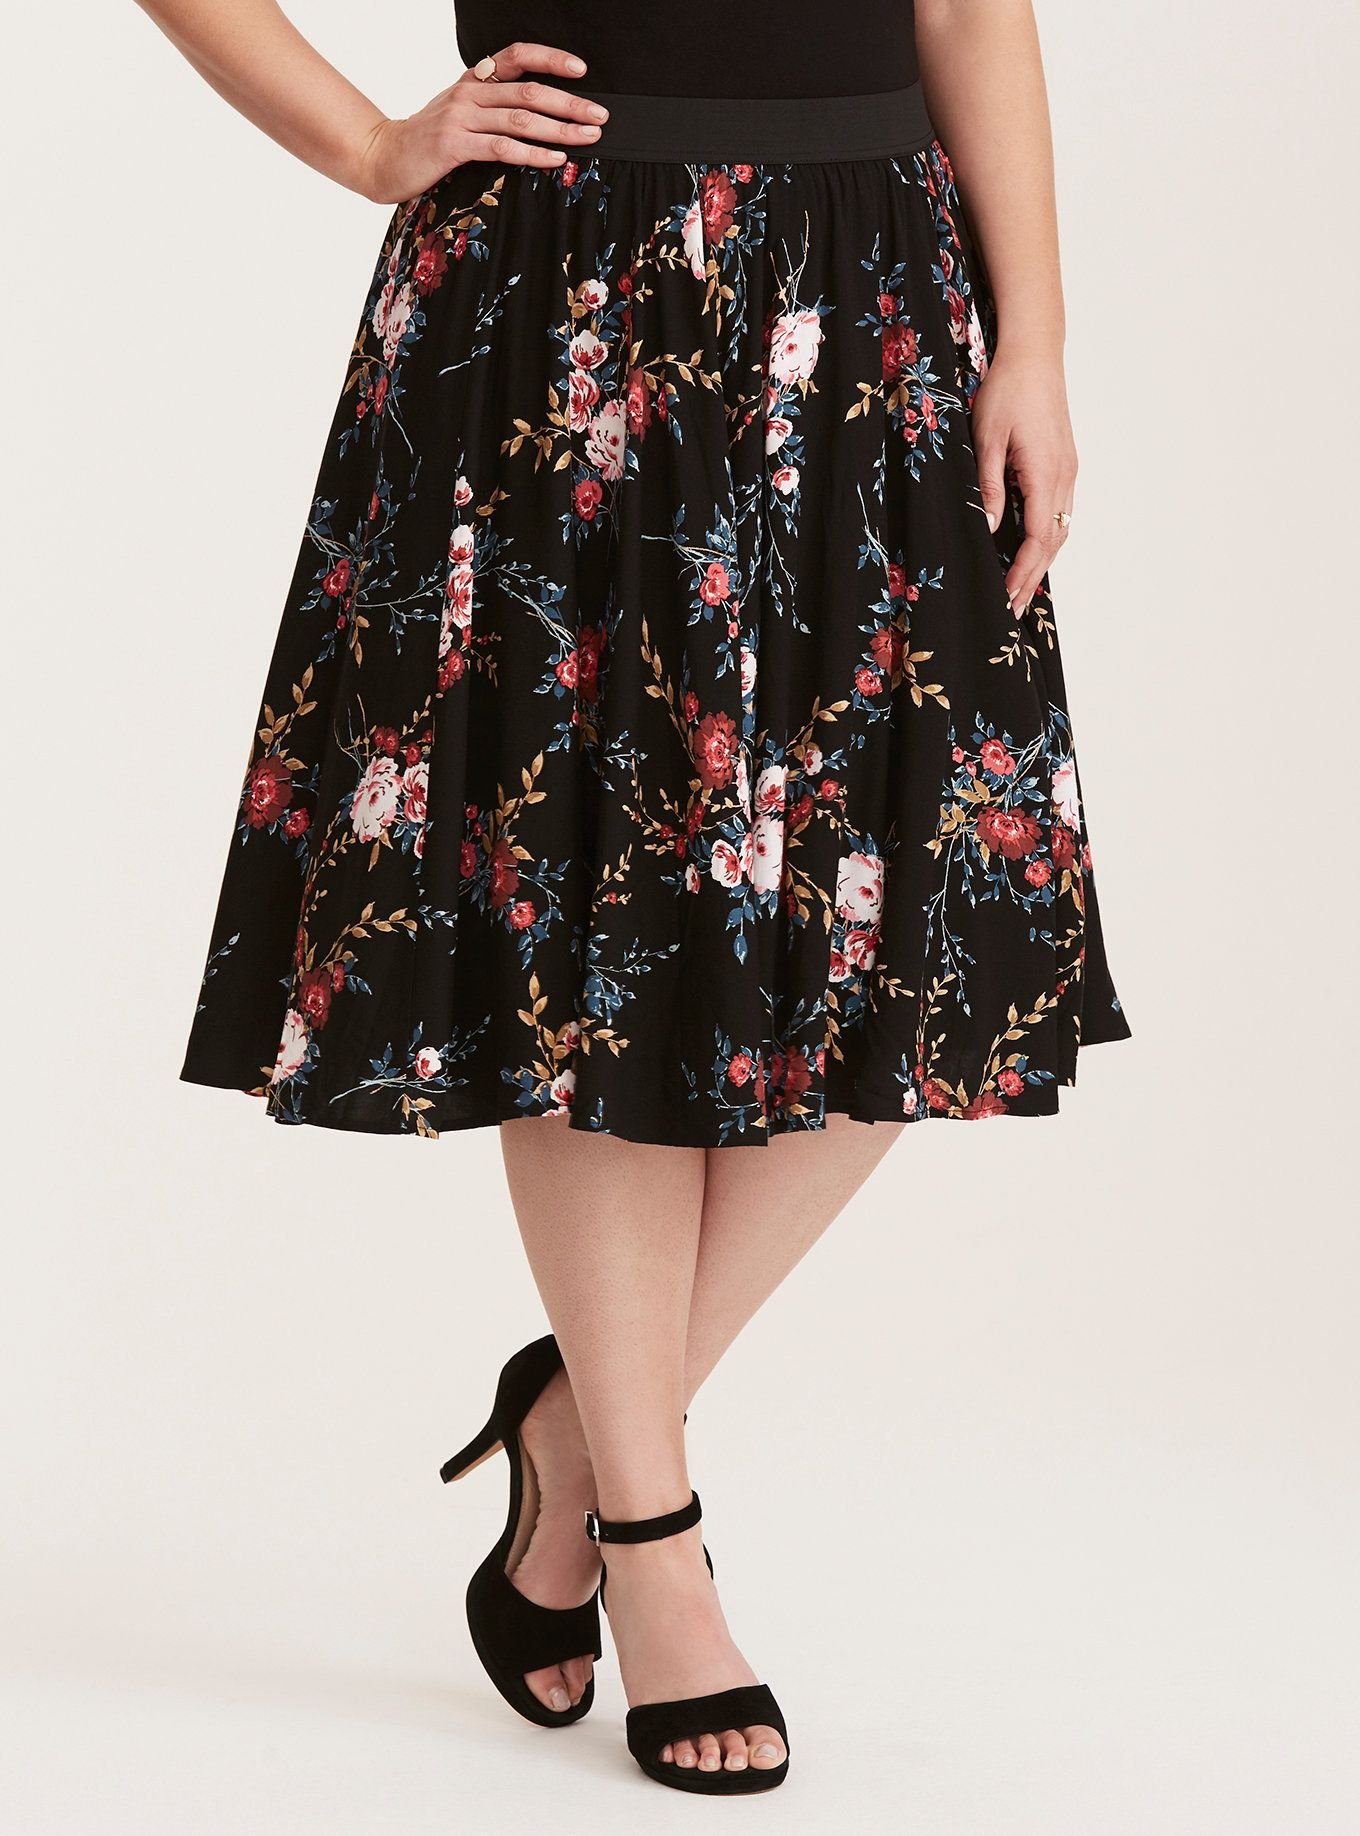 01098f0a8e0a44 This black floral print challis midi skirt certainly has swing to spare  with a fully lined underlay that's been poofed out by tulle ...